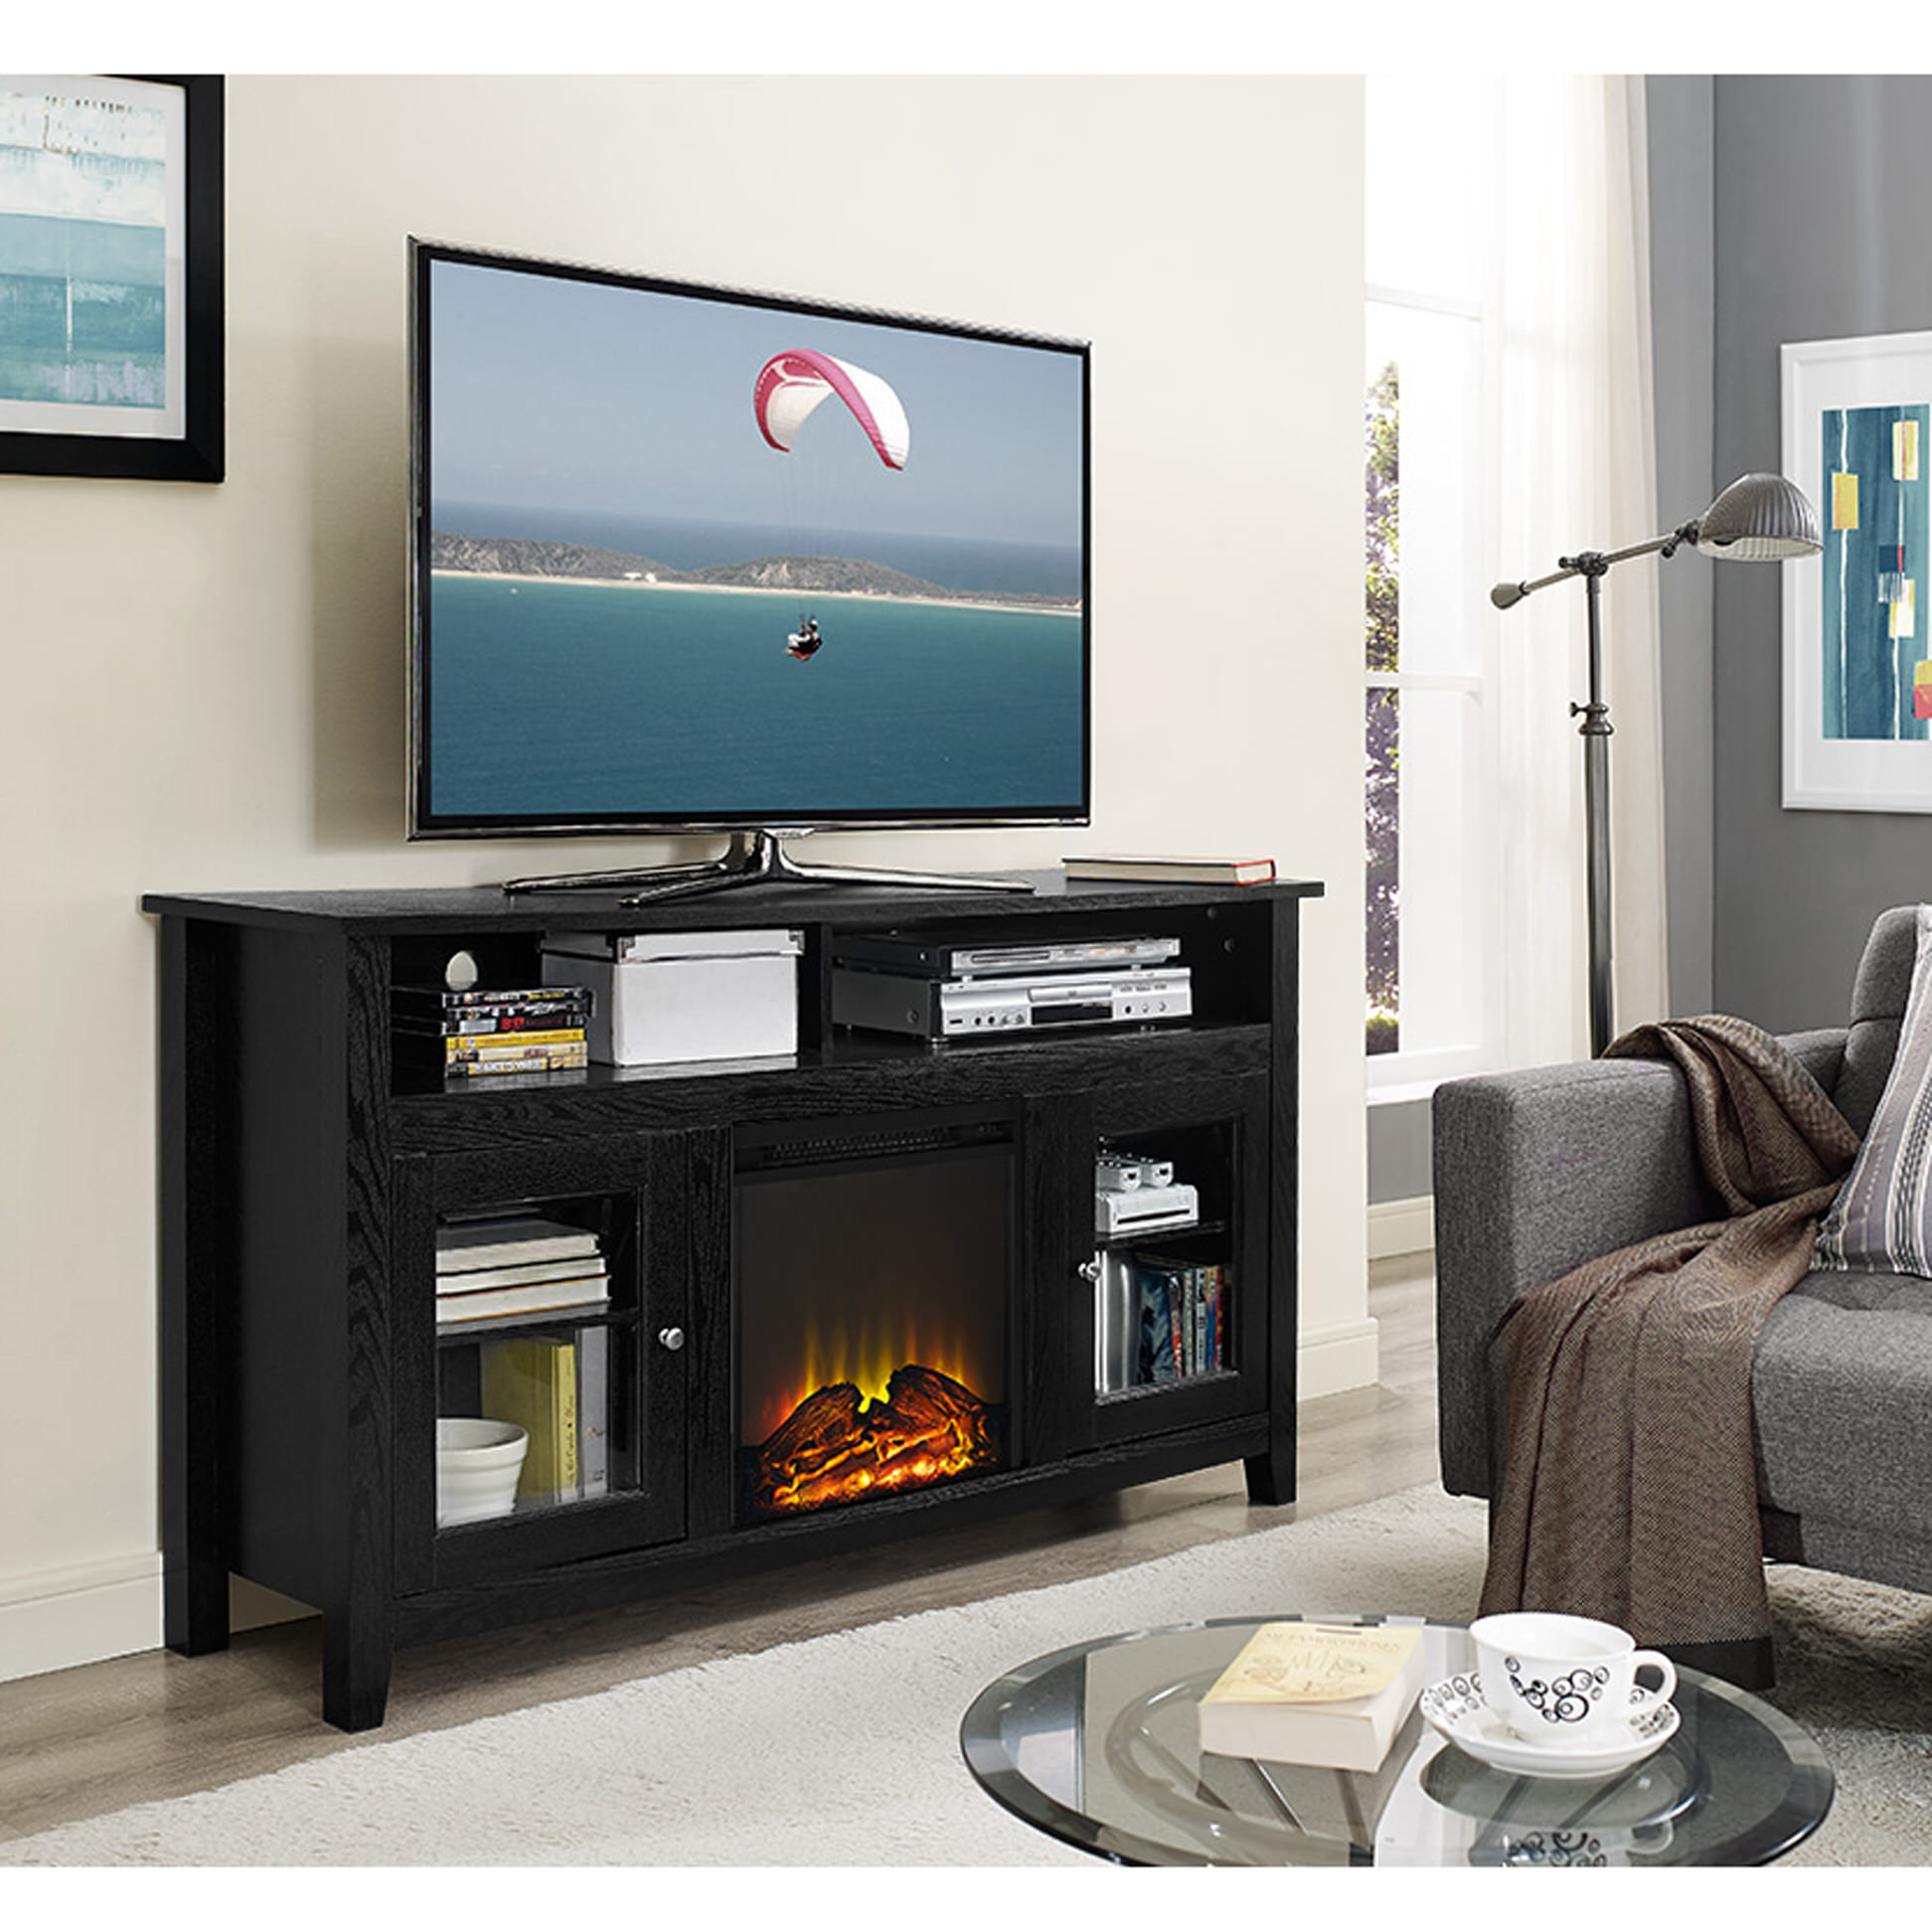 Wasatch 58 Highboy Fireplace TV Stand - Black by Walker Edison Create a warm